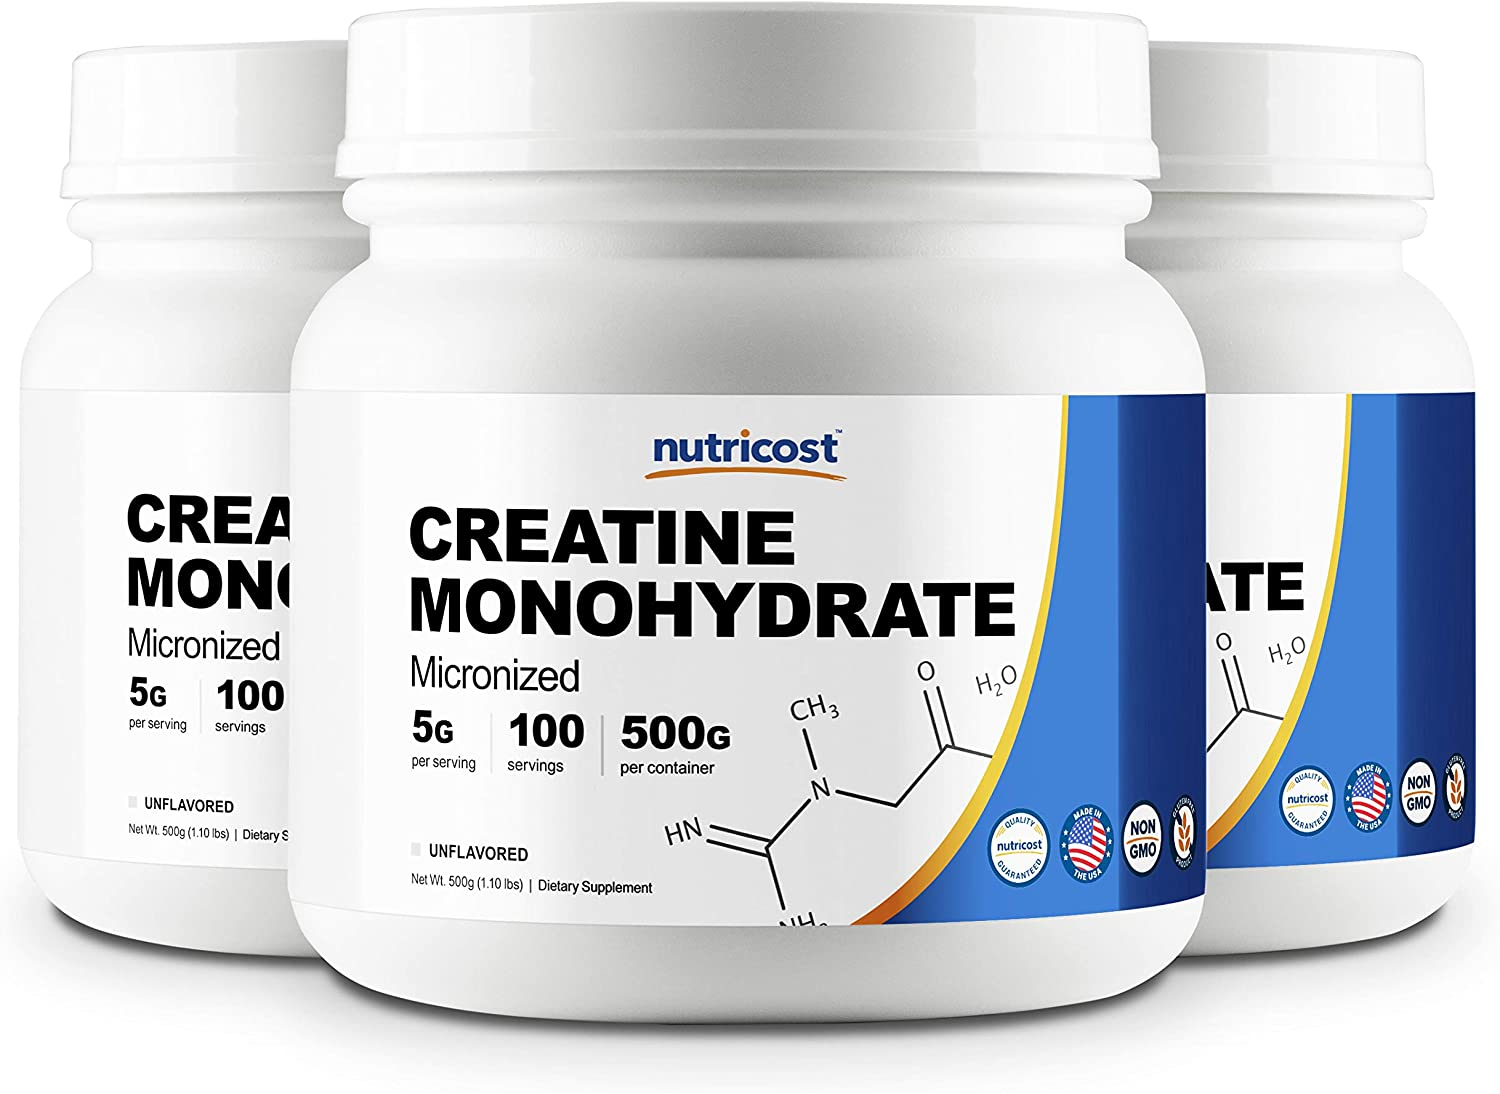 Nutricost Creatine Monohydrate 500G 3 Pack – 5000mg Per Serv, 500G and 400 Servings Each – Pure Creatine Monohydrate – Explosive Energy Power